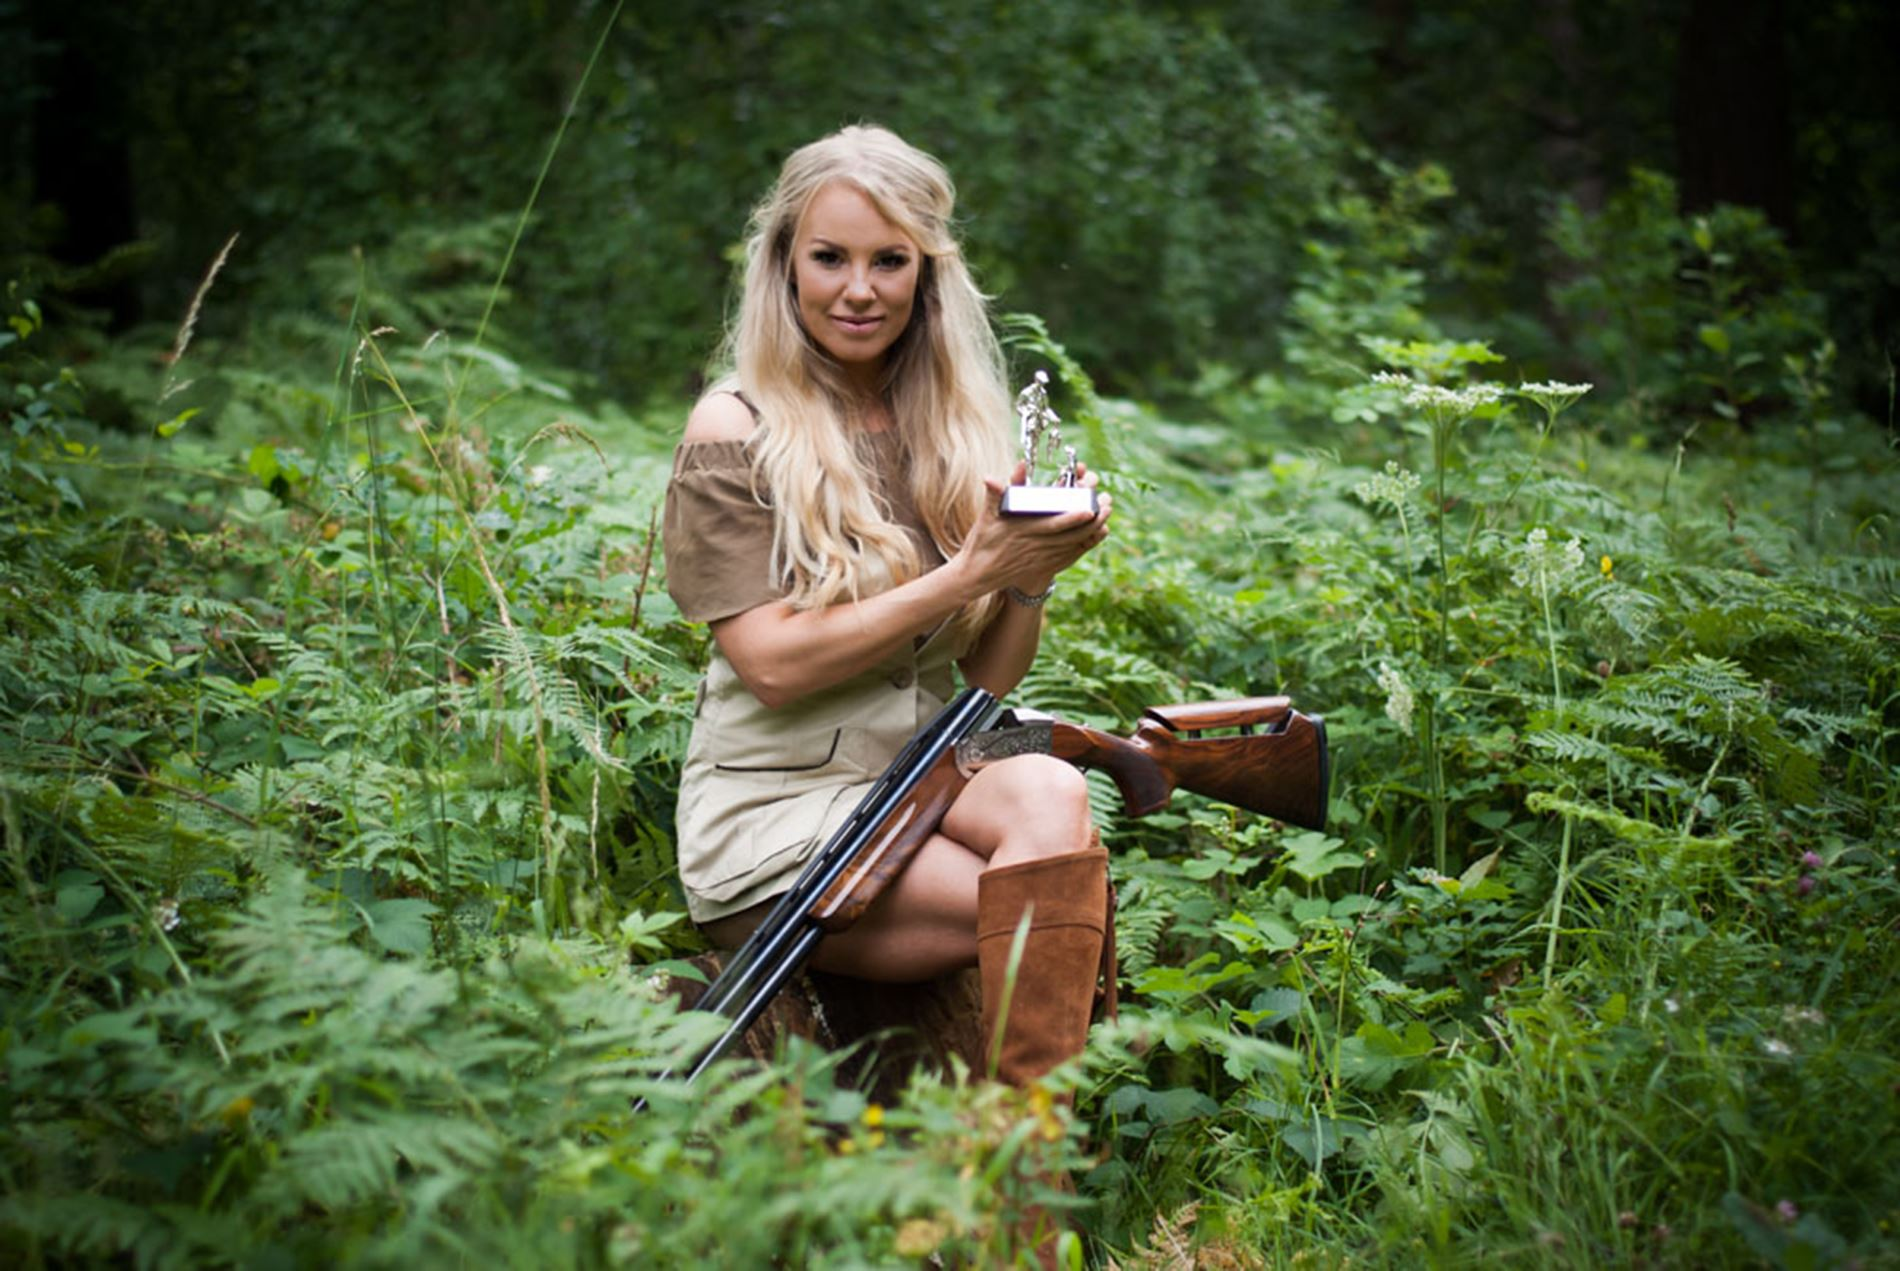 Rachel Carrie shooting with her rifle in the woods